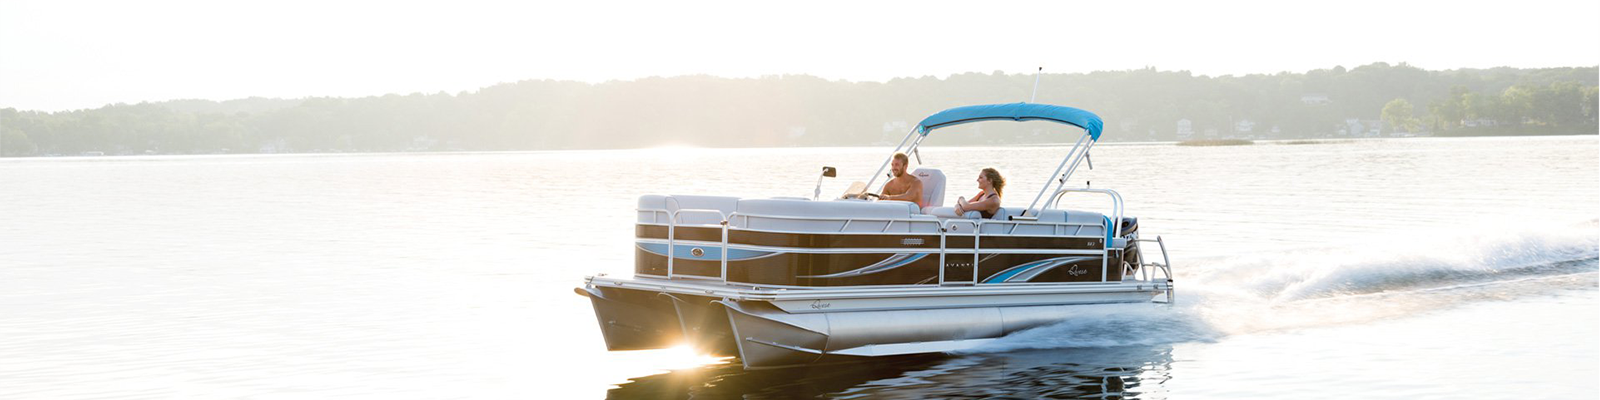 pontoon-dockside-accessories